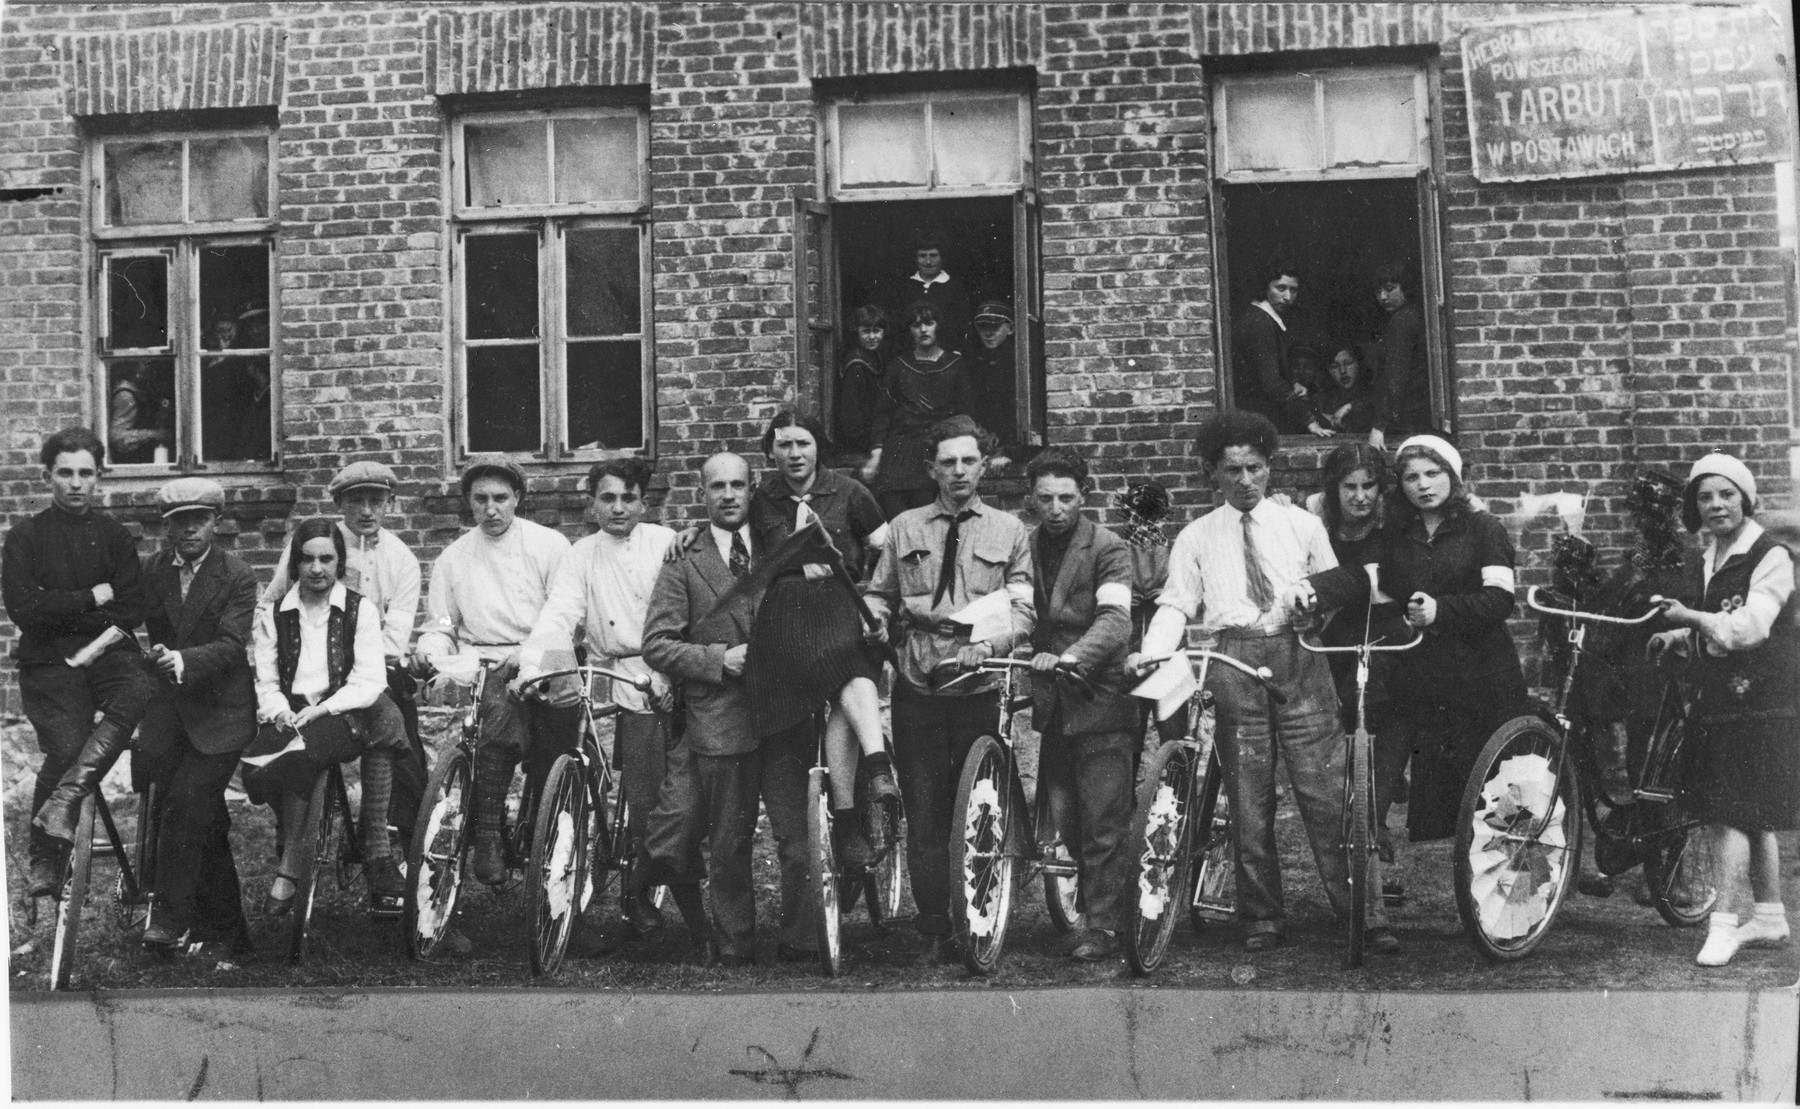 Group portrait of students and teachers at the Hebrew language Tarbut school in Postawy with their bicycles.    Among those pictured is Ralph Denishevsky (seventh from the left).